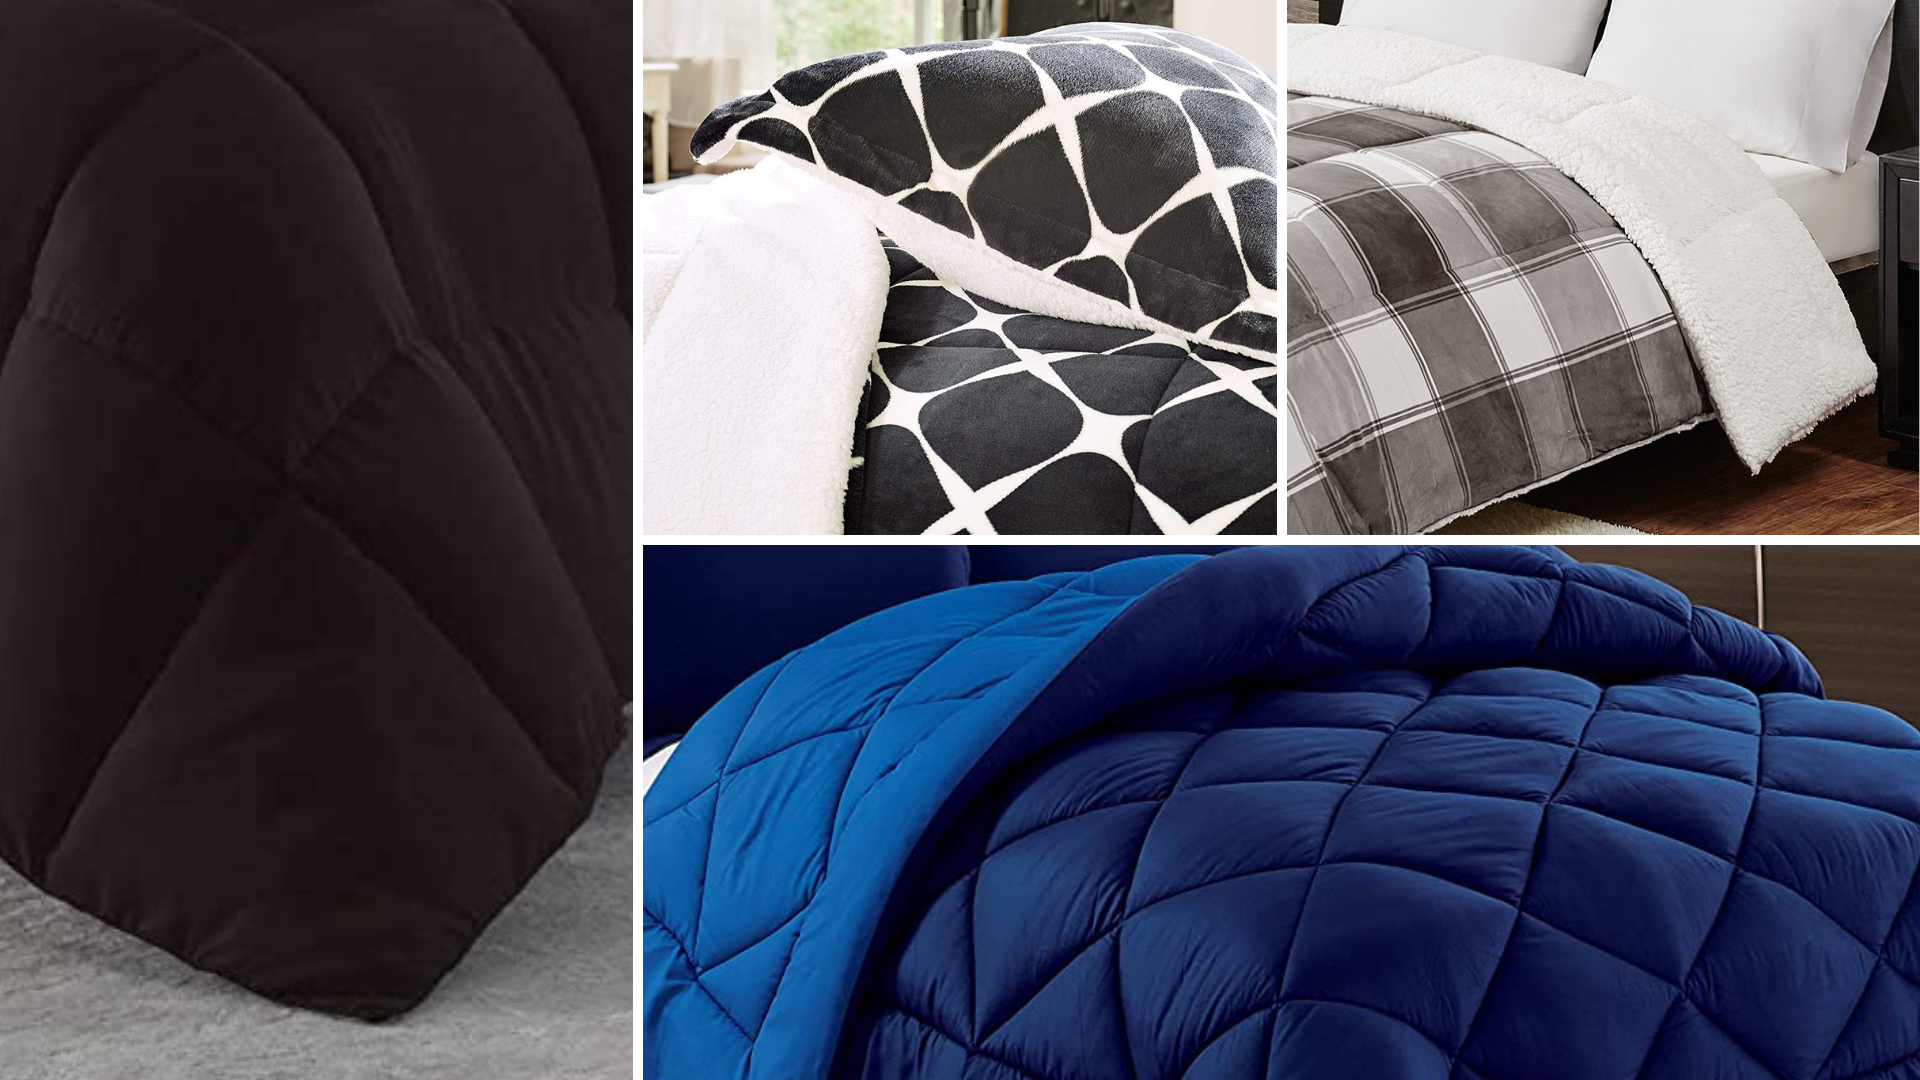 5 Best Winter Comforters for Staying Cozy